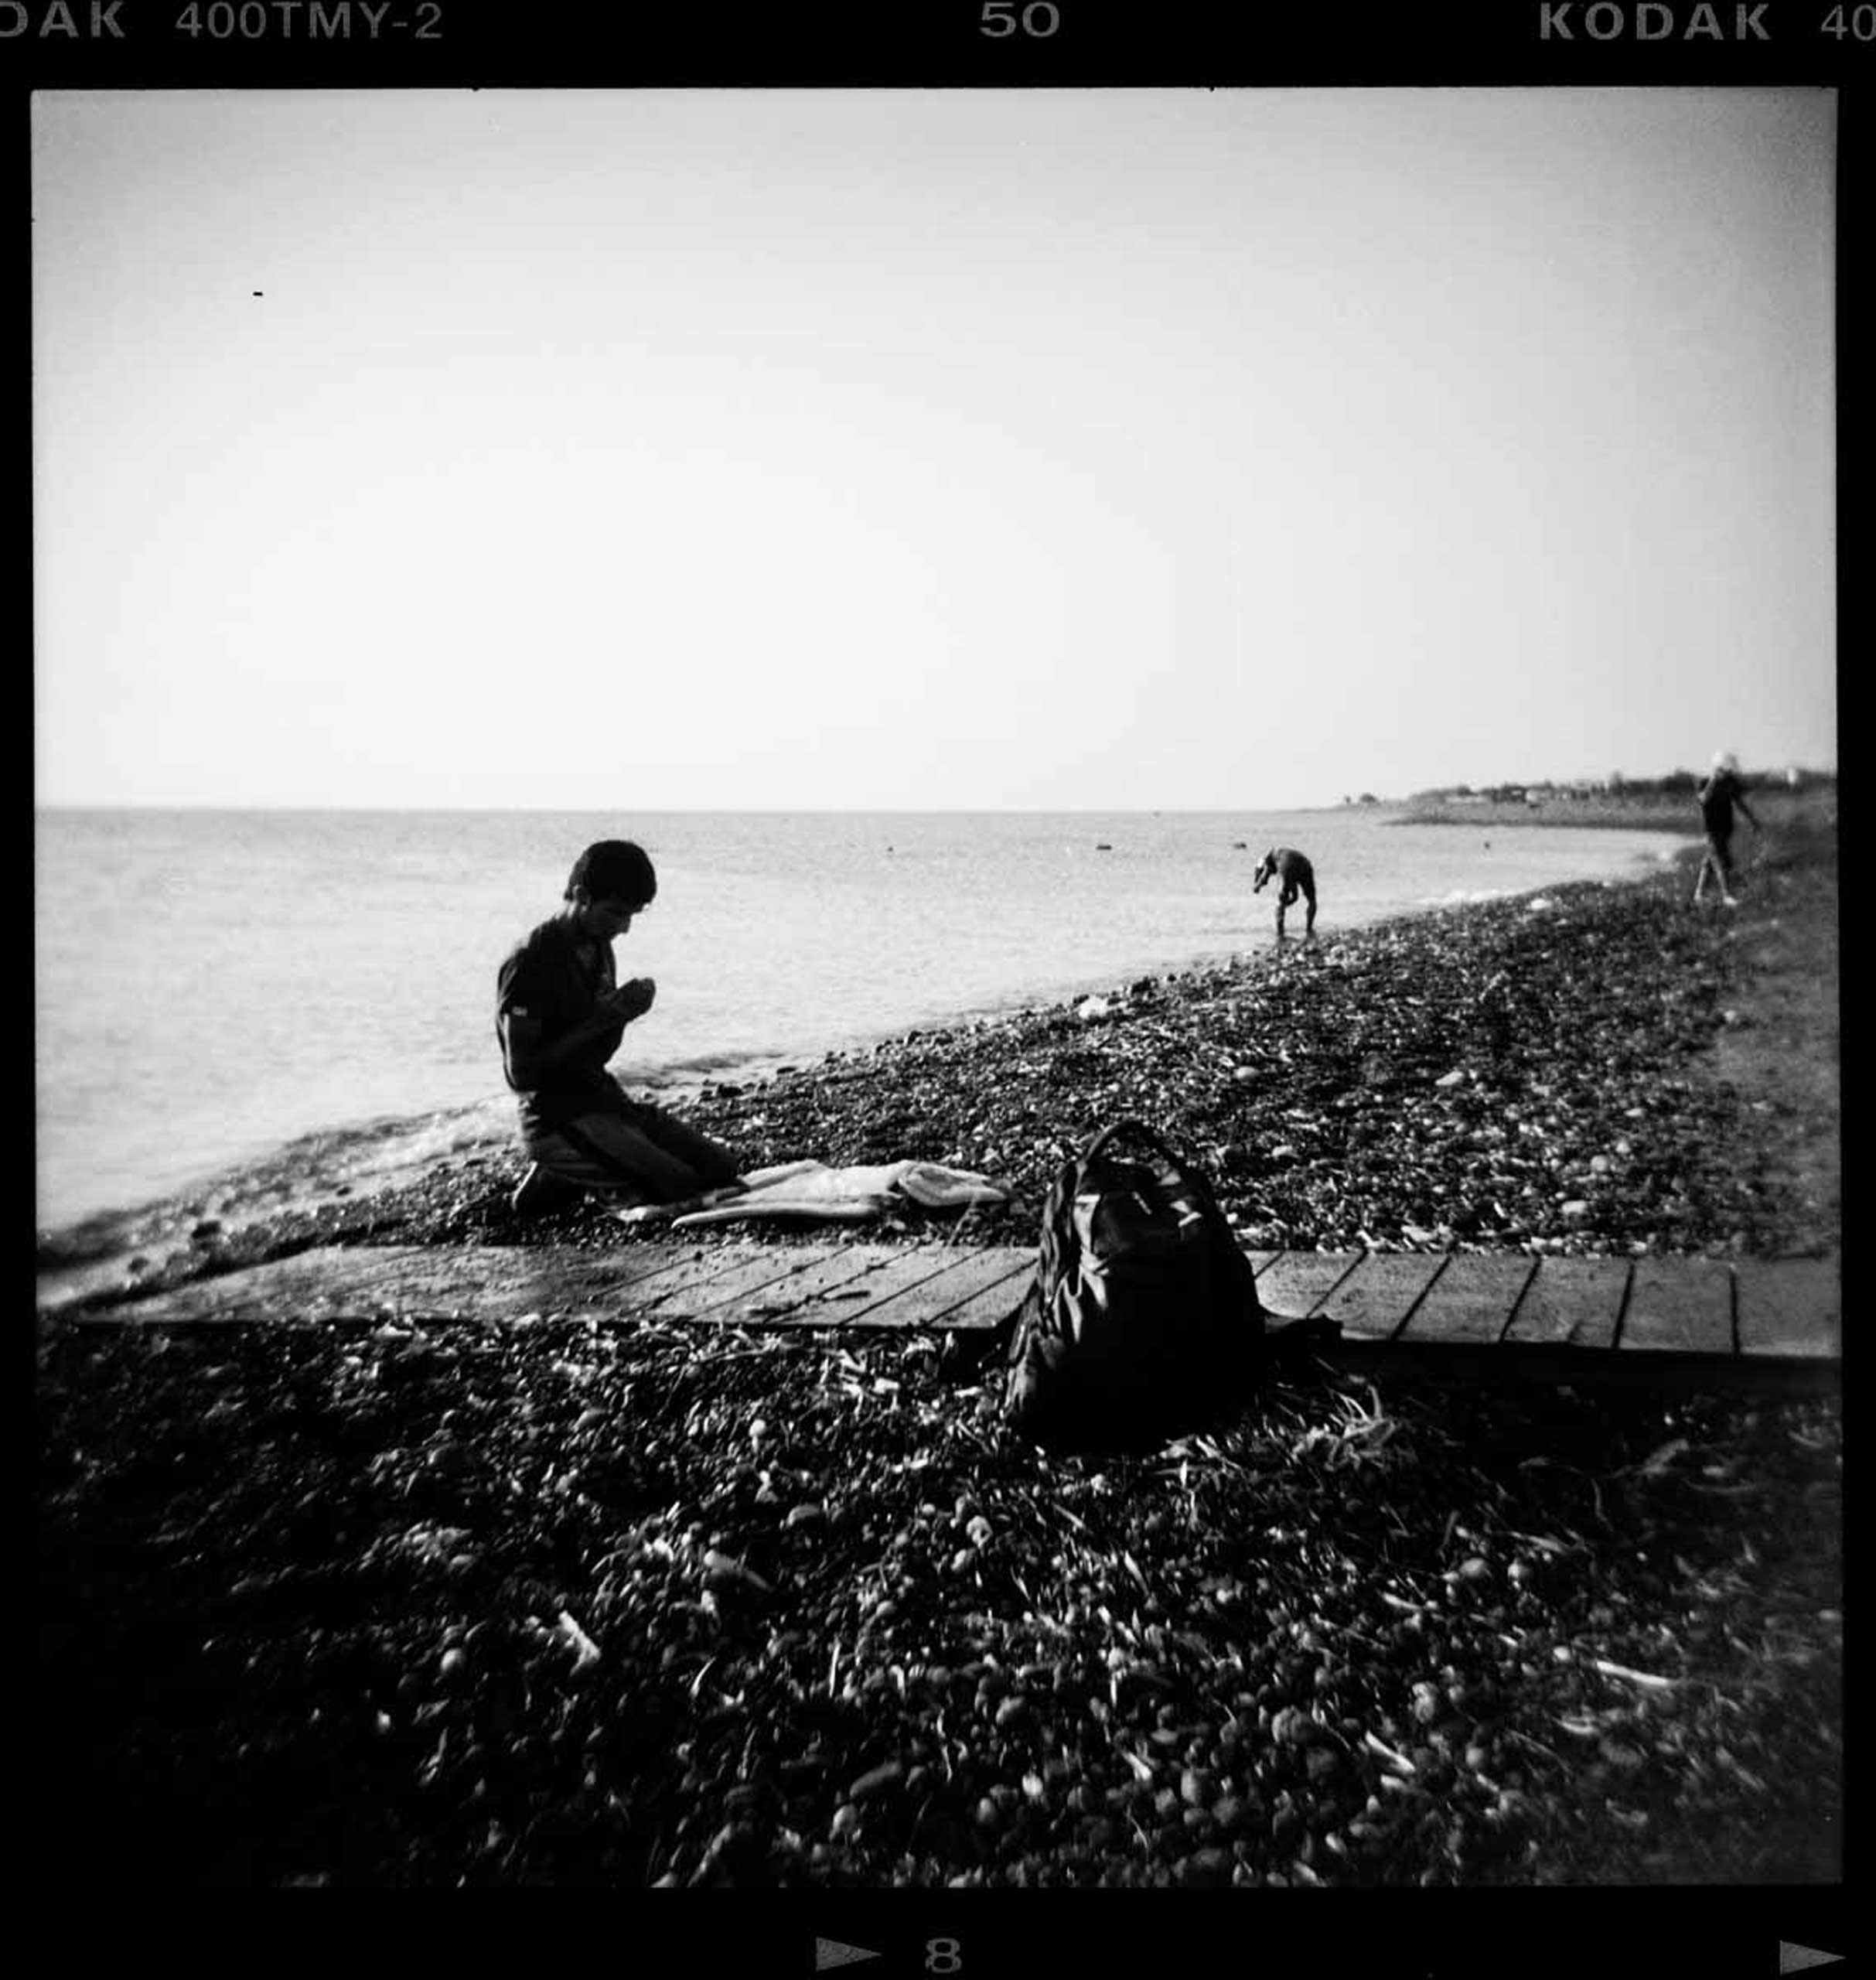 Al Jazeera English: The Unpromised LandA refugee prays moments after he arrived in a dinghy on Psalidi beach on the Greek island of Kos, on Aug. 2015.